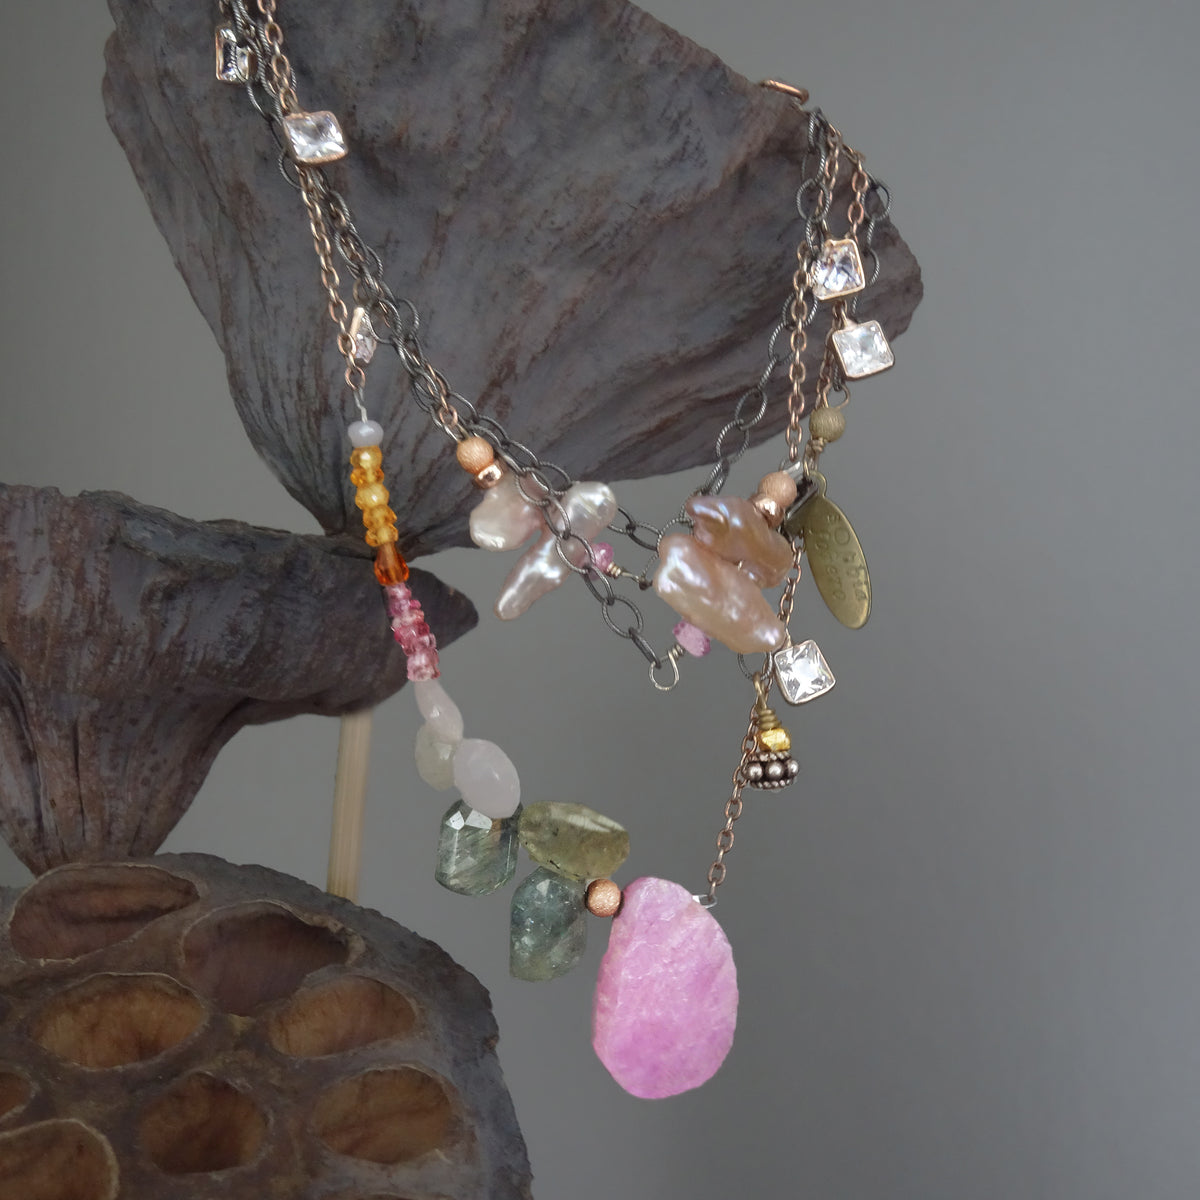 Shine on Harvest Moon (sapphire, opal, and rose gold necklace)